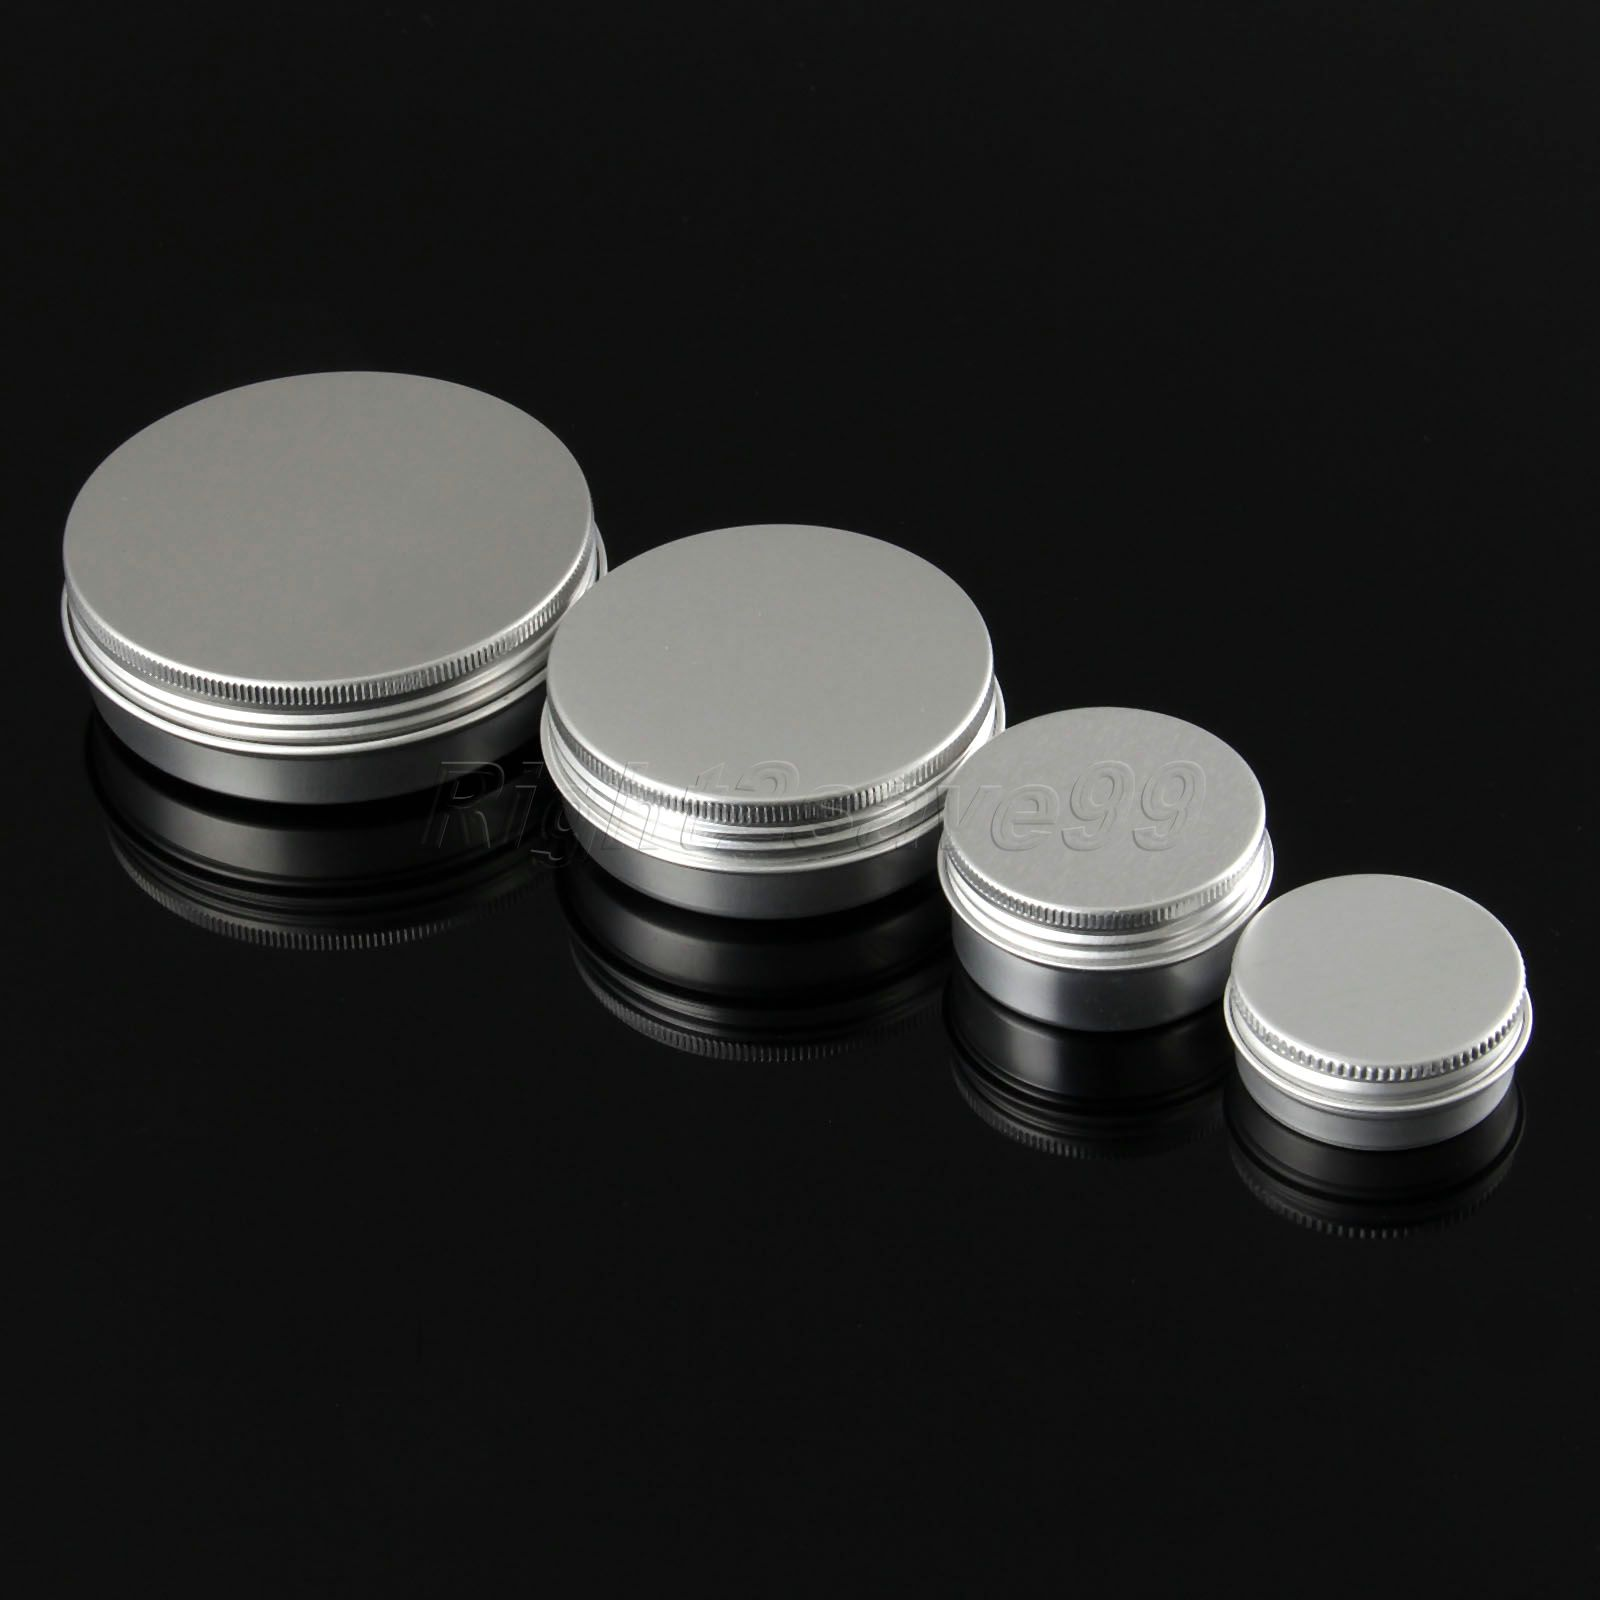 5PCS Aluminium Cosmetic jar 15g 30g 60g 100g Metal Cream Jars with screw lid Silver tin container bottle candle can empty box 6 pcs 15g 30g 50g 1oz empty upscale refillable black cosmetics cream glass bottle container pot case jar with black lid